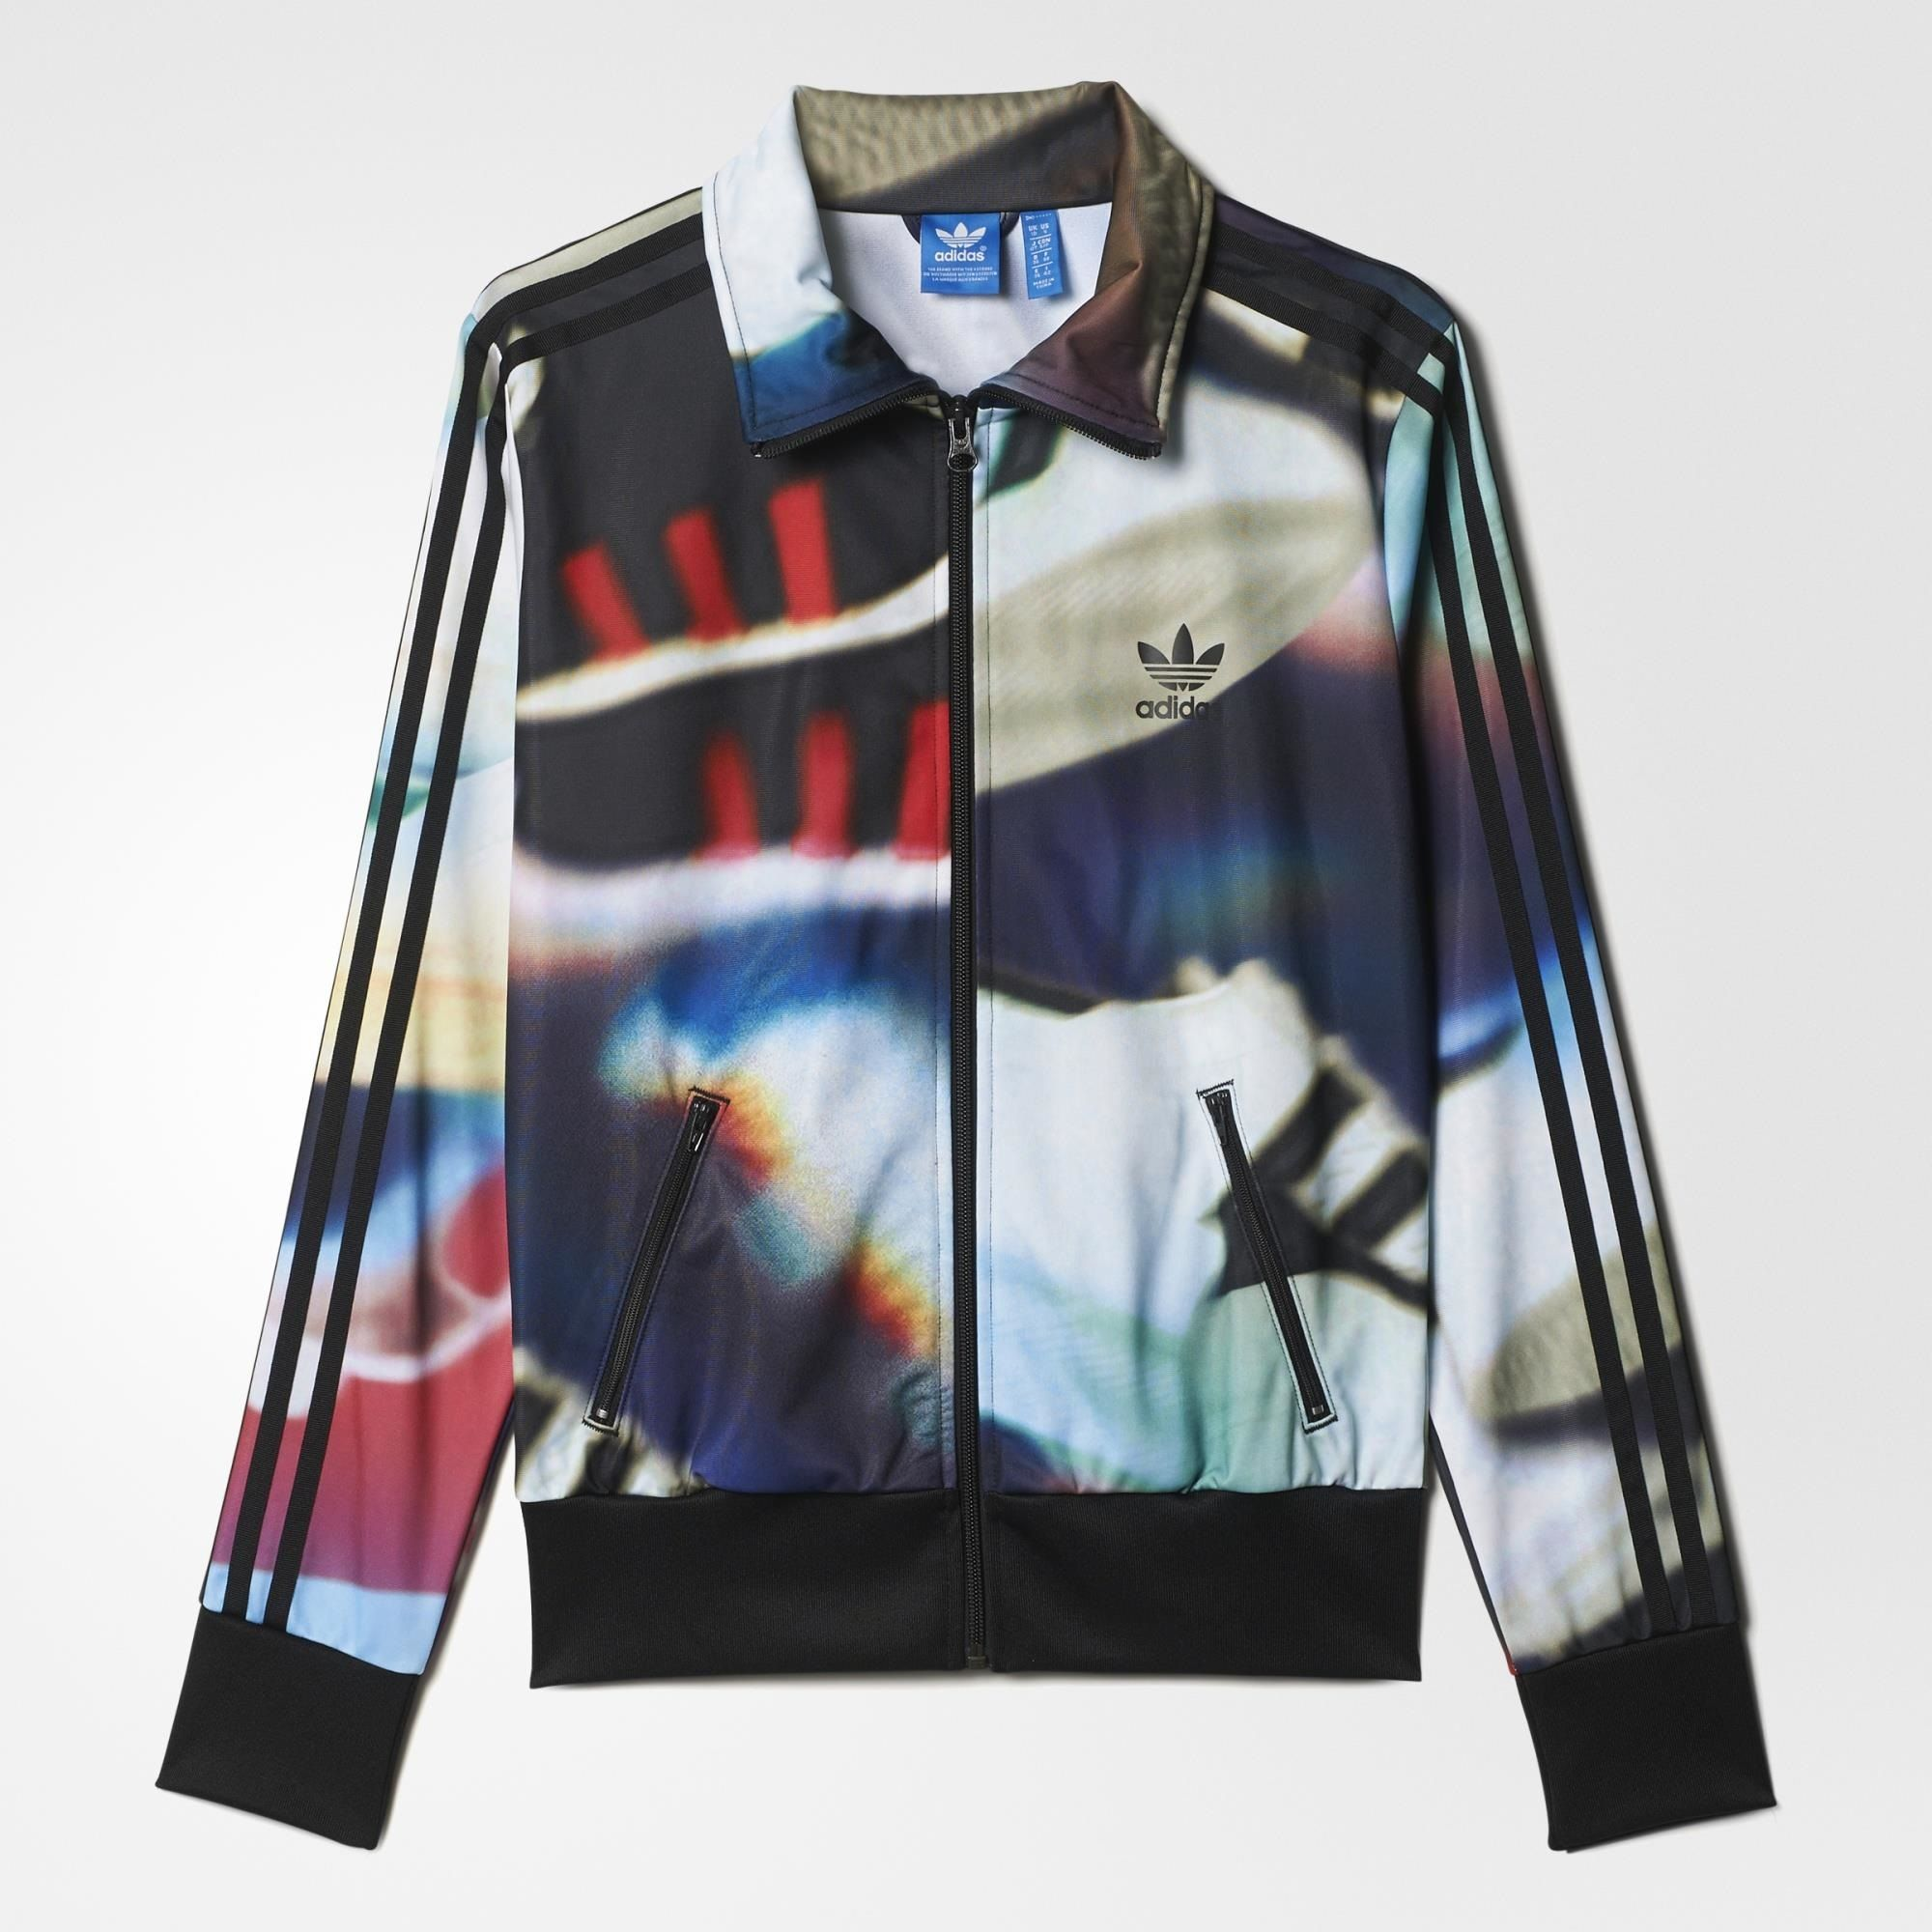 buy popular fbbf9 ae7a0 adidas Originals celebrates over 40 years of sneaker love. This women s  Firebird track top is